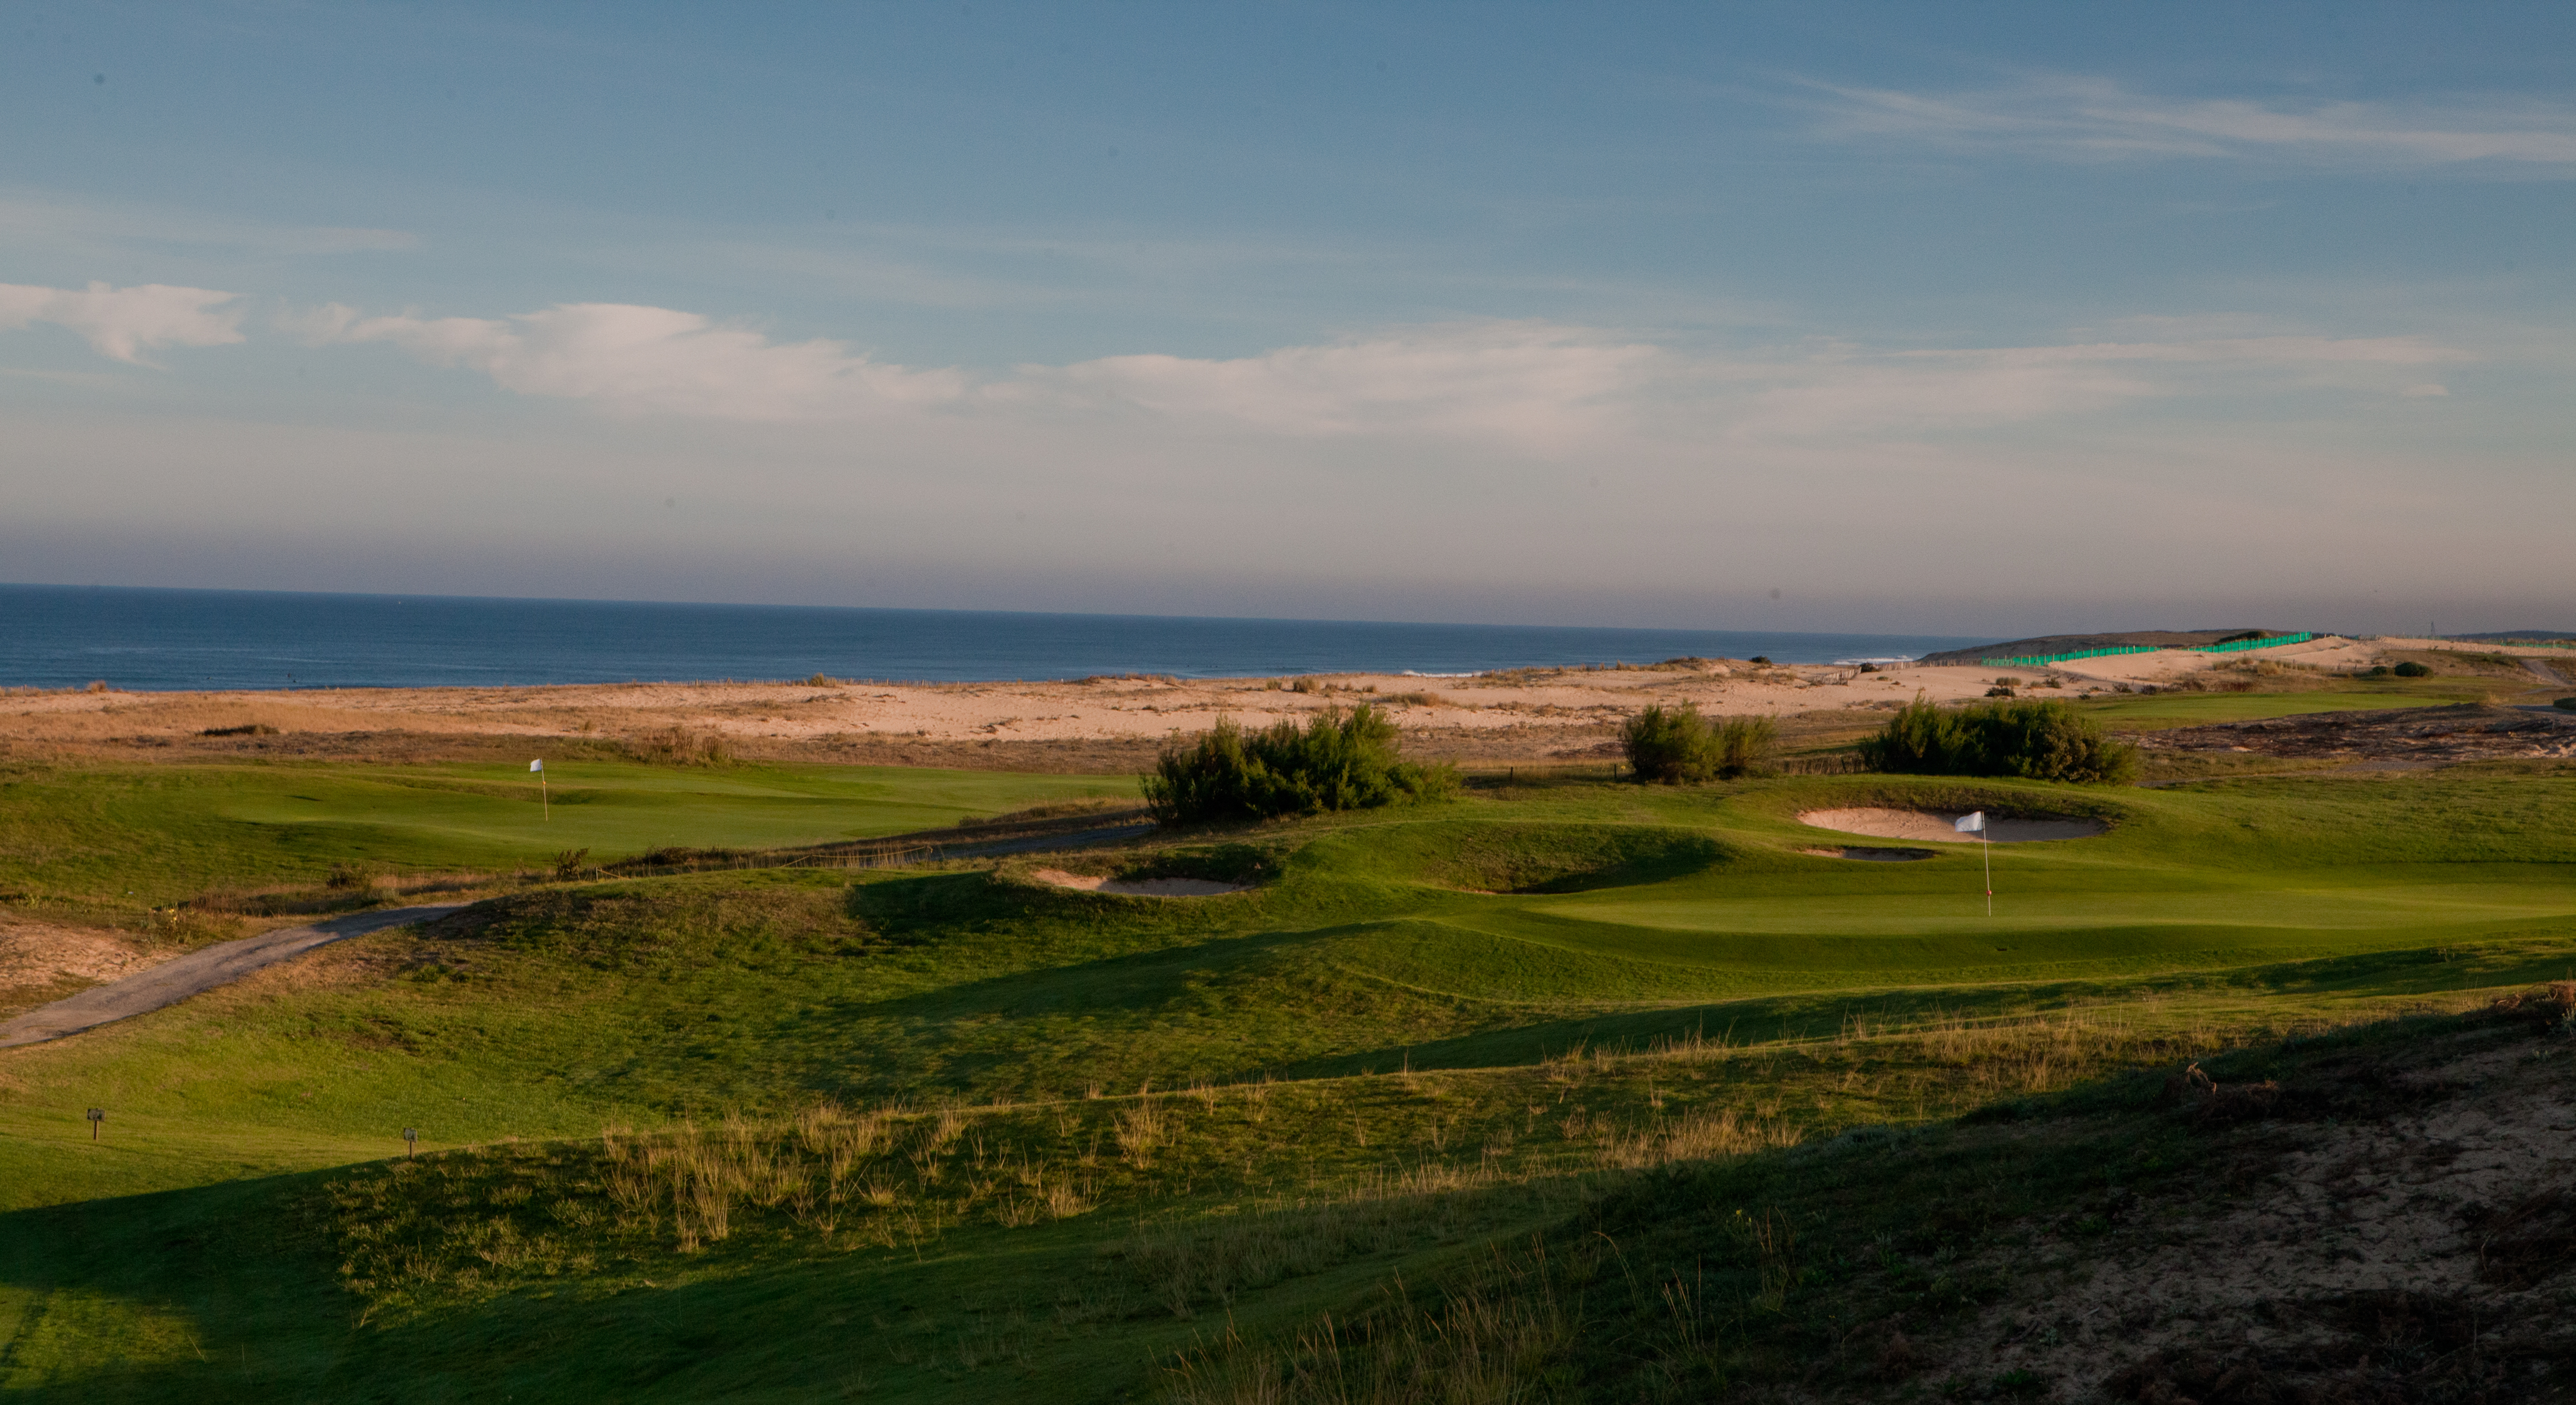 Overview of golf course named Golf de Moliets